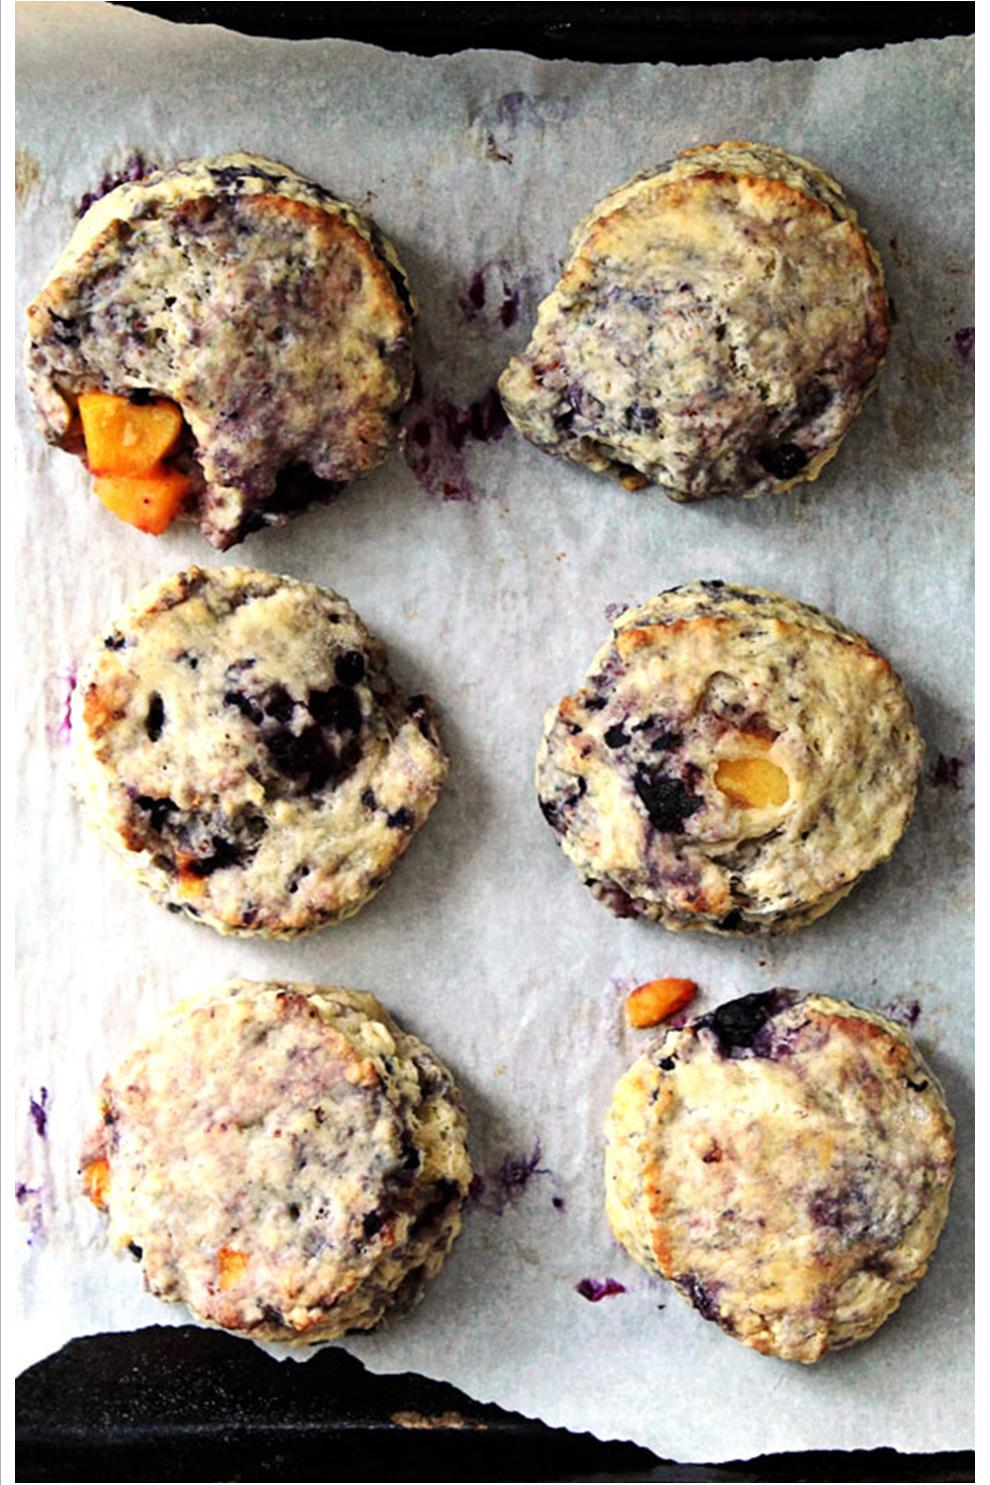 blueberry and peach scones mb photography.jpg